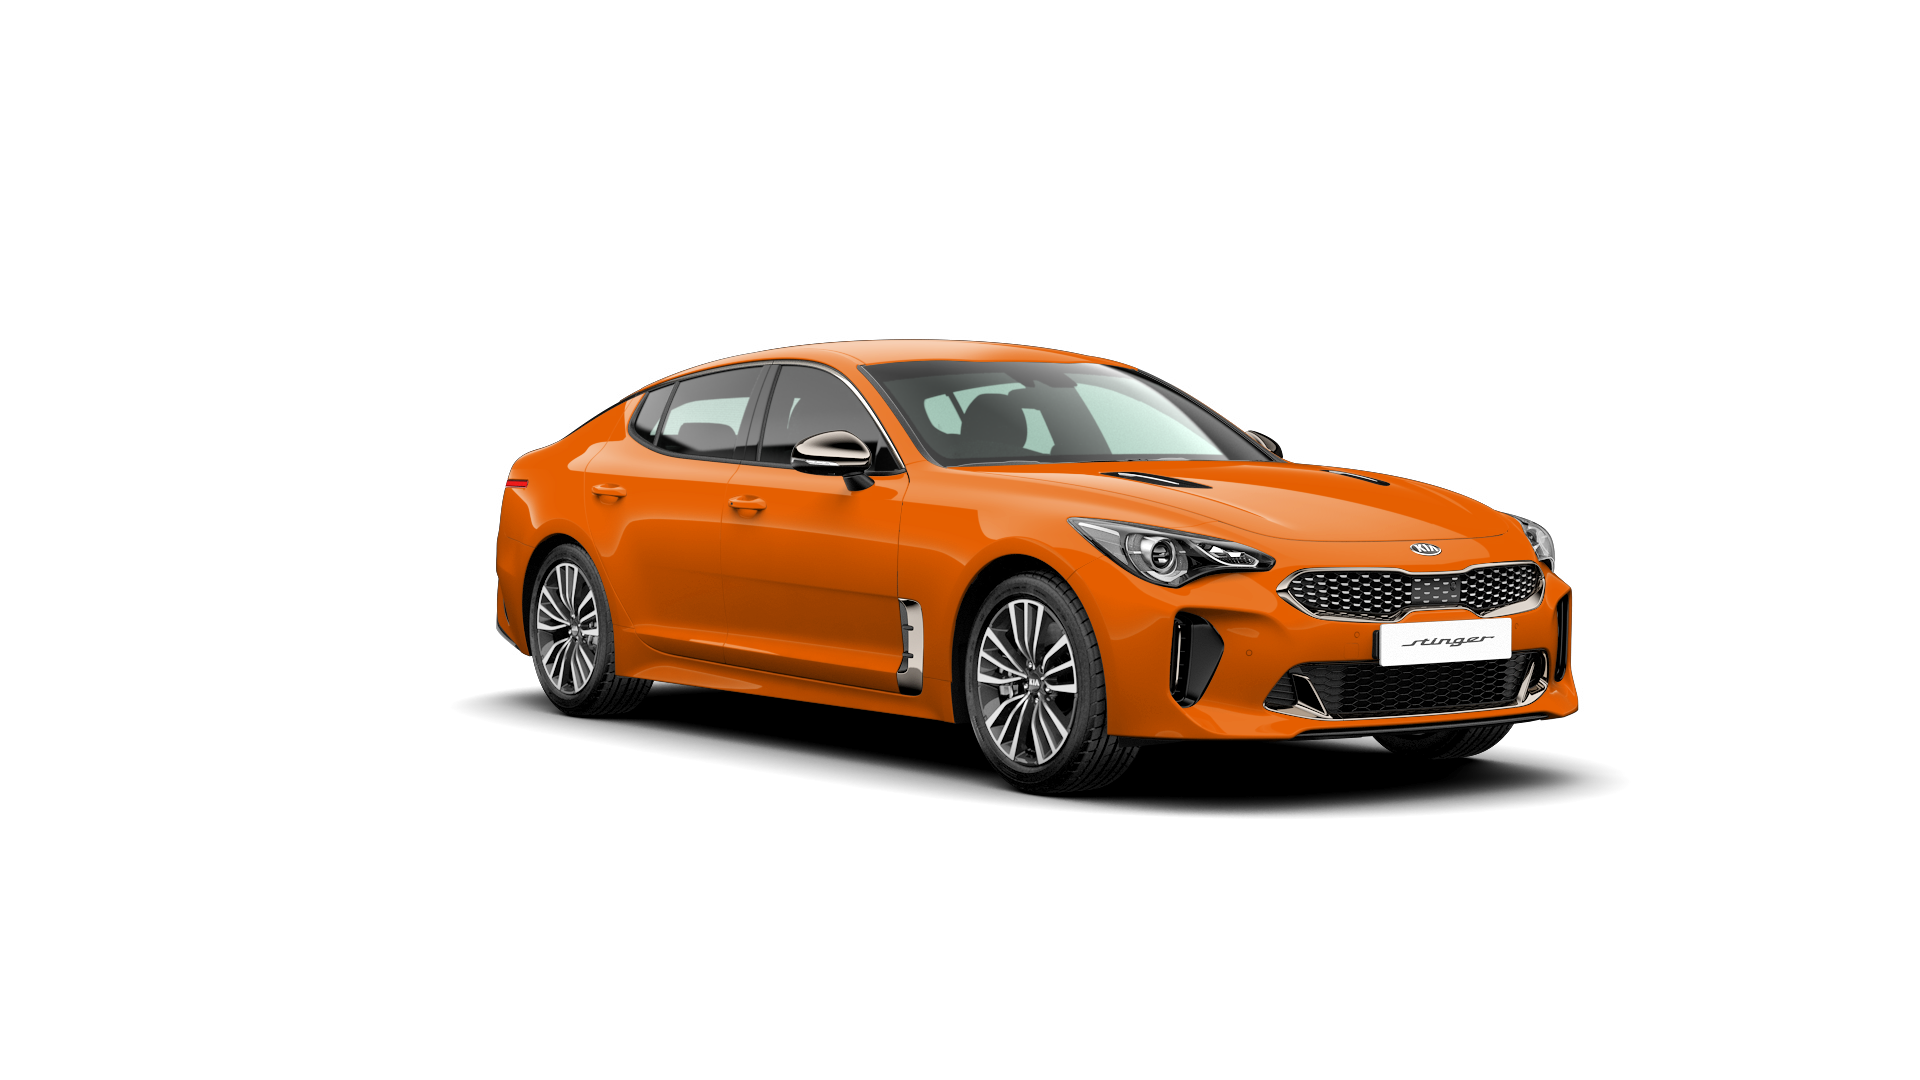 Kia Stinger Ember Orange (Standard)